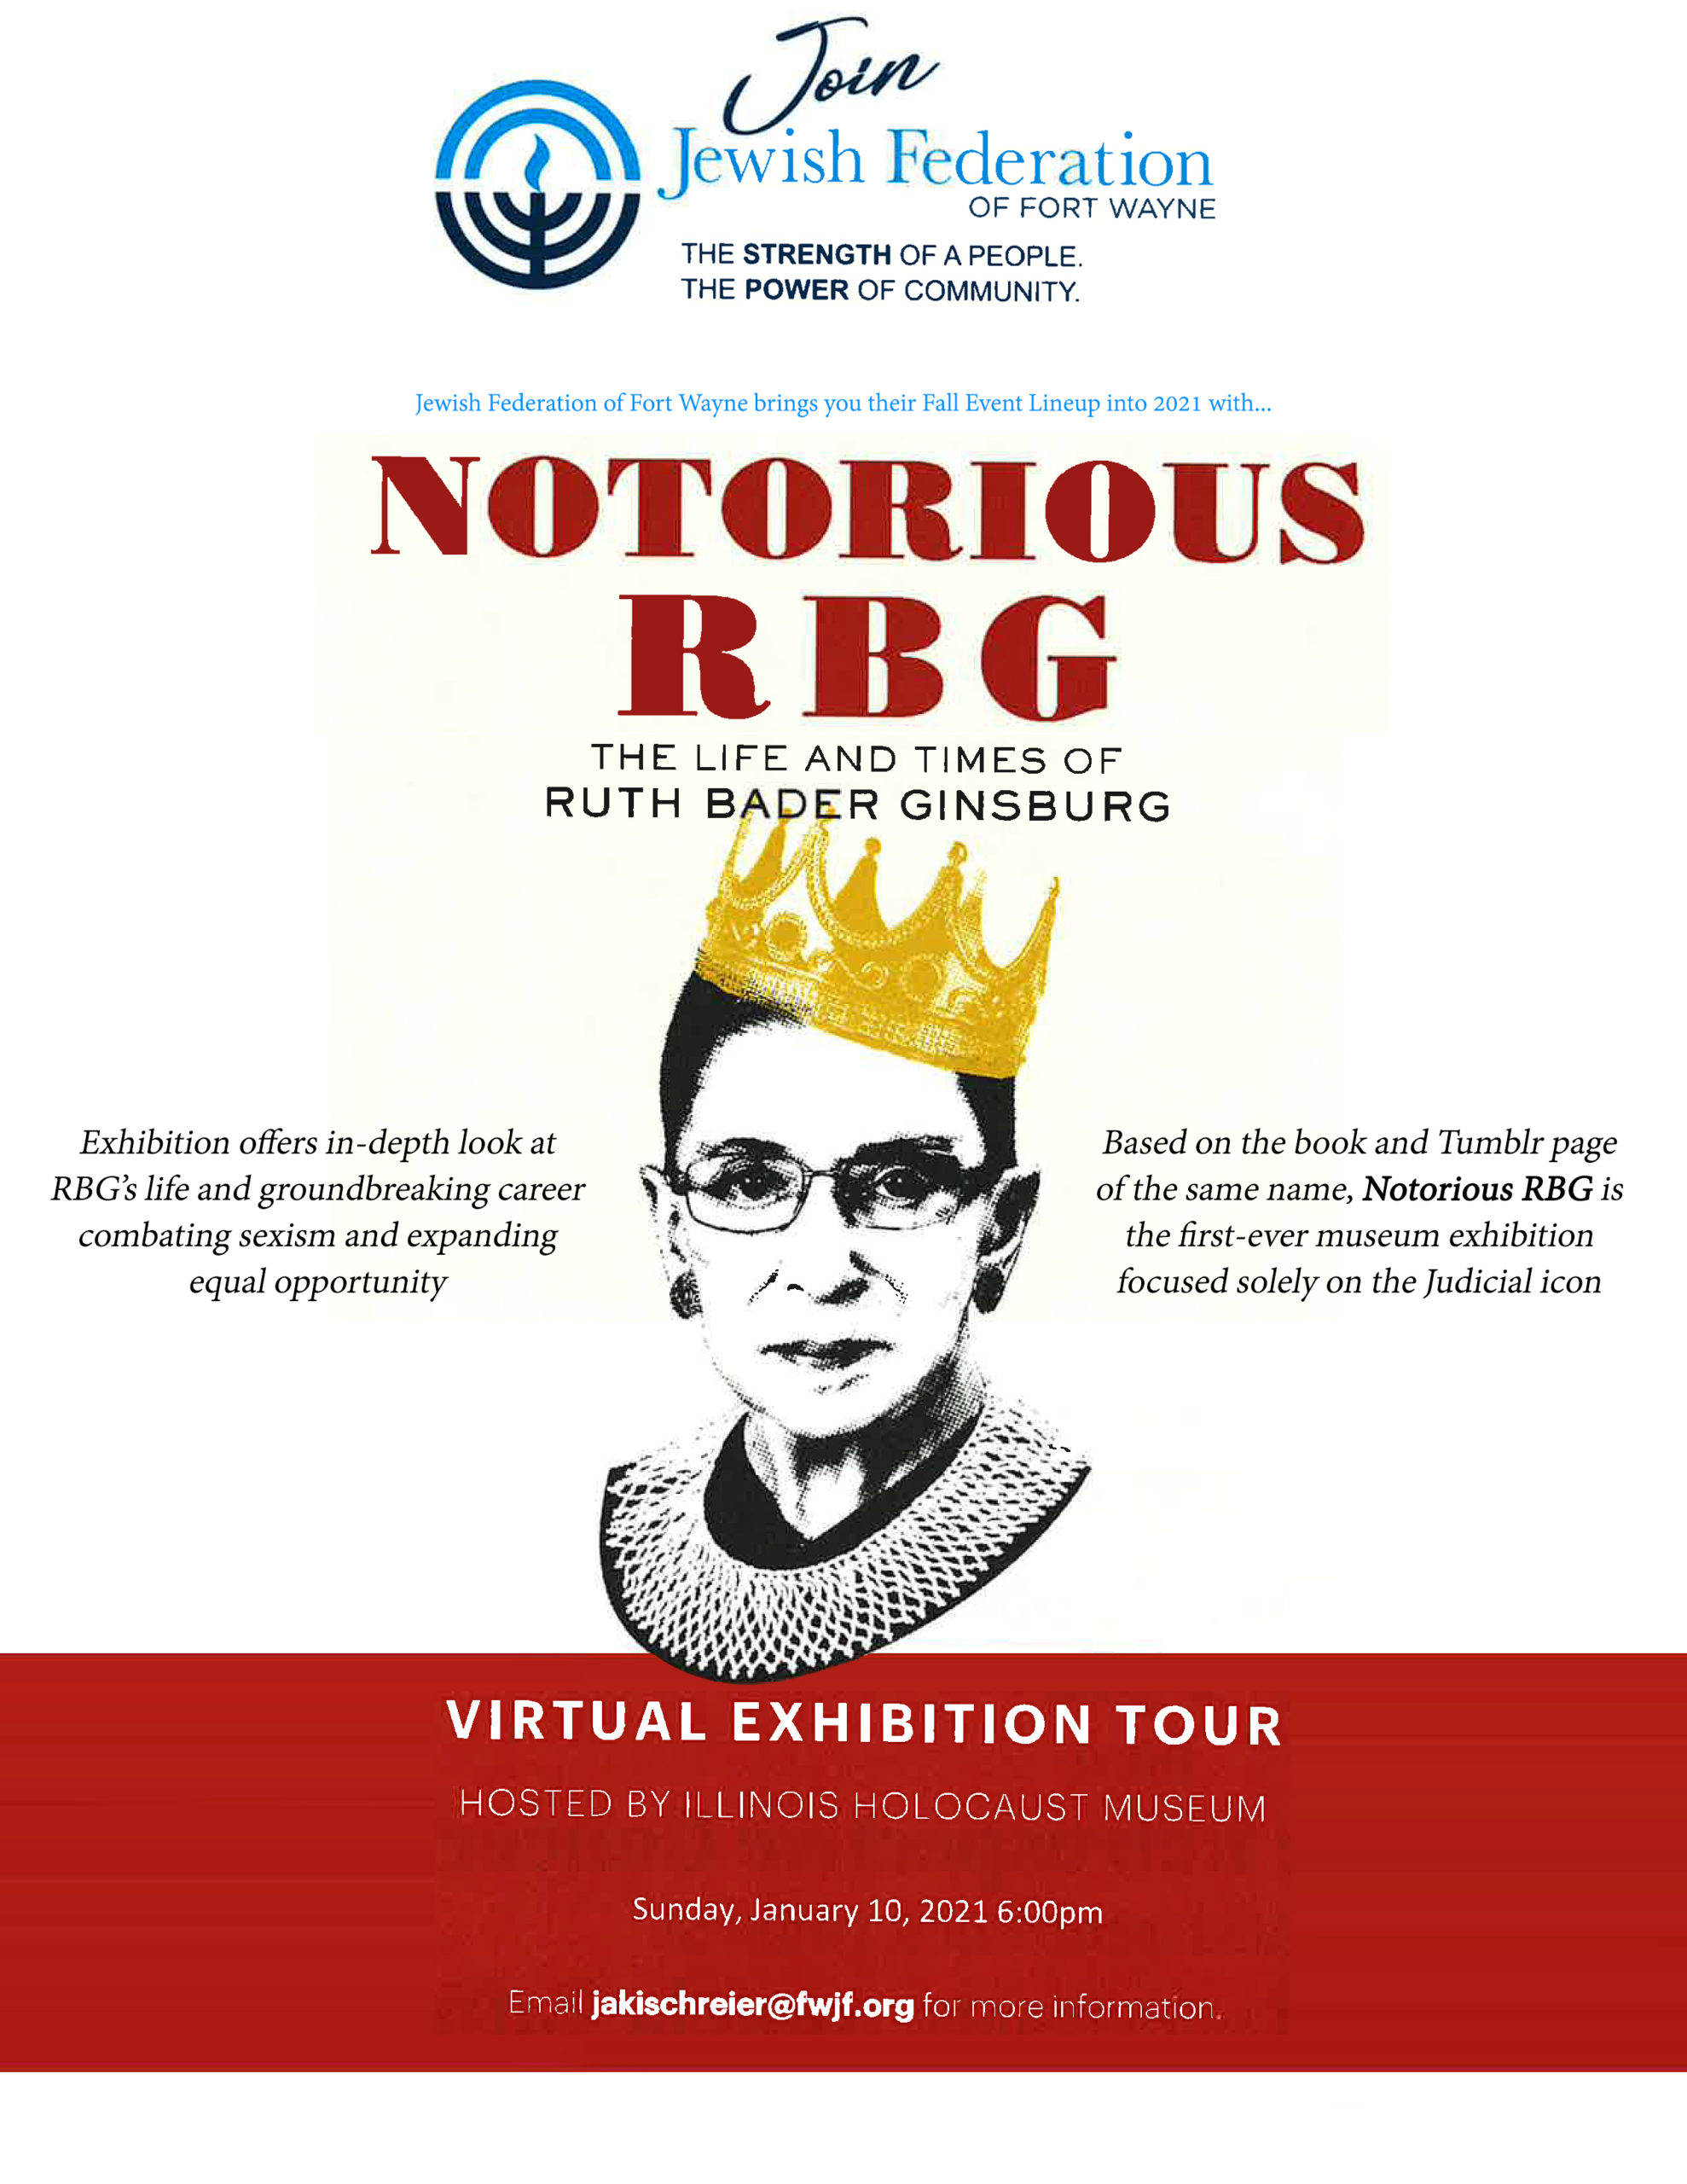 RBG virtual event